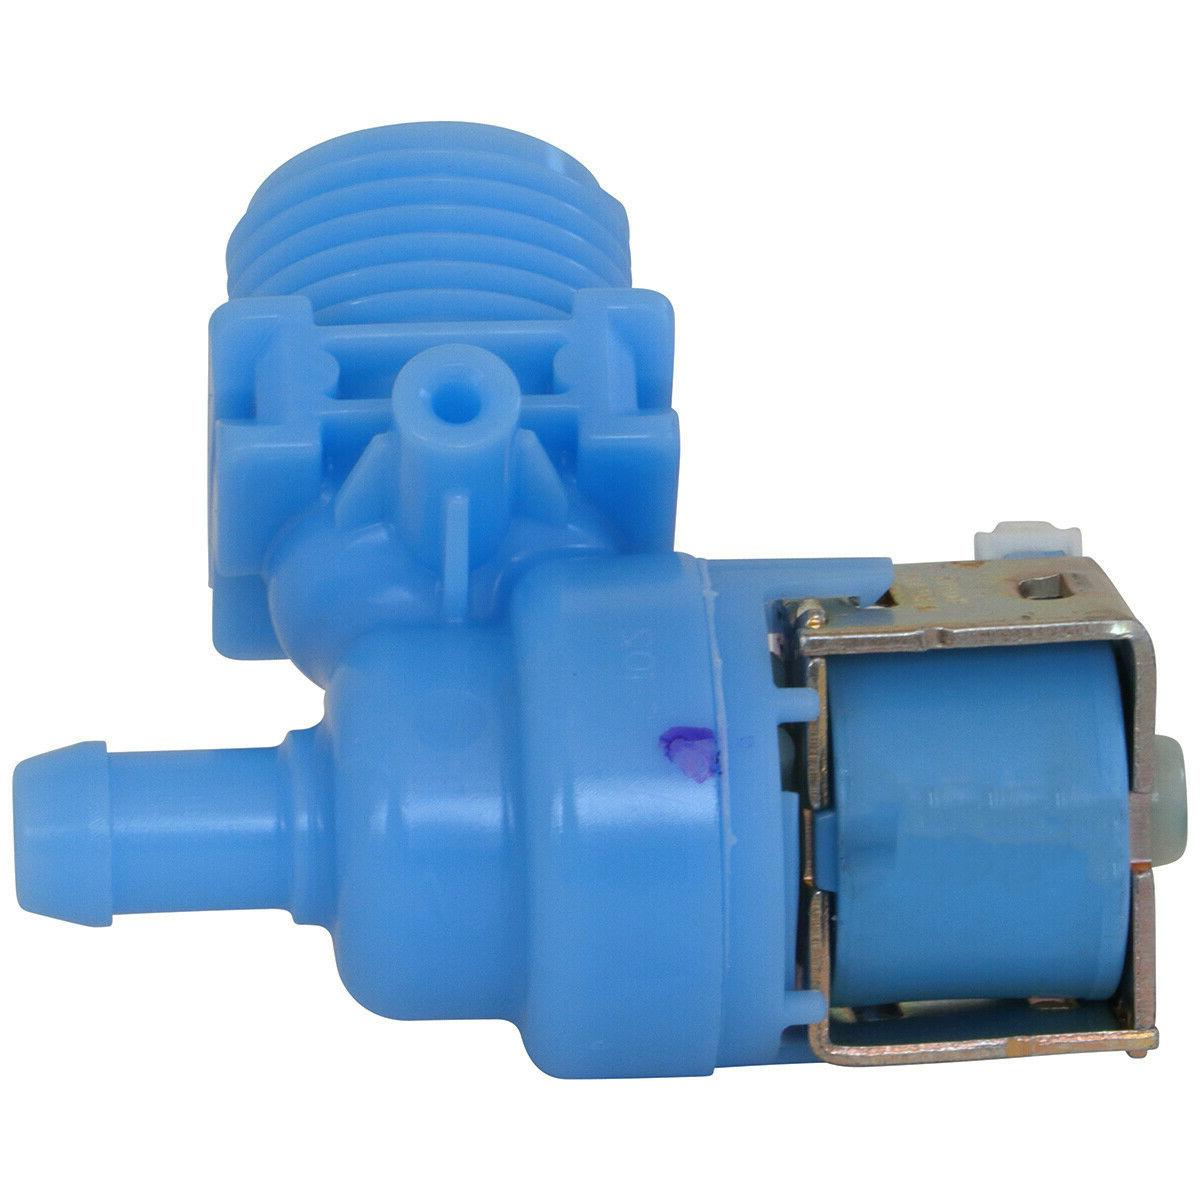 Endurance Pro Inlet Water Valve for Whirlpool